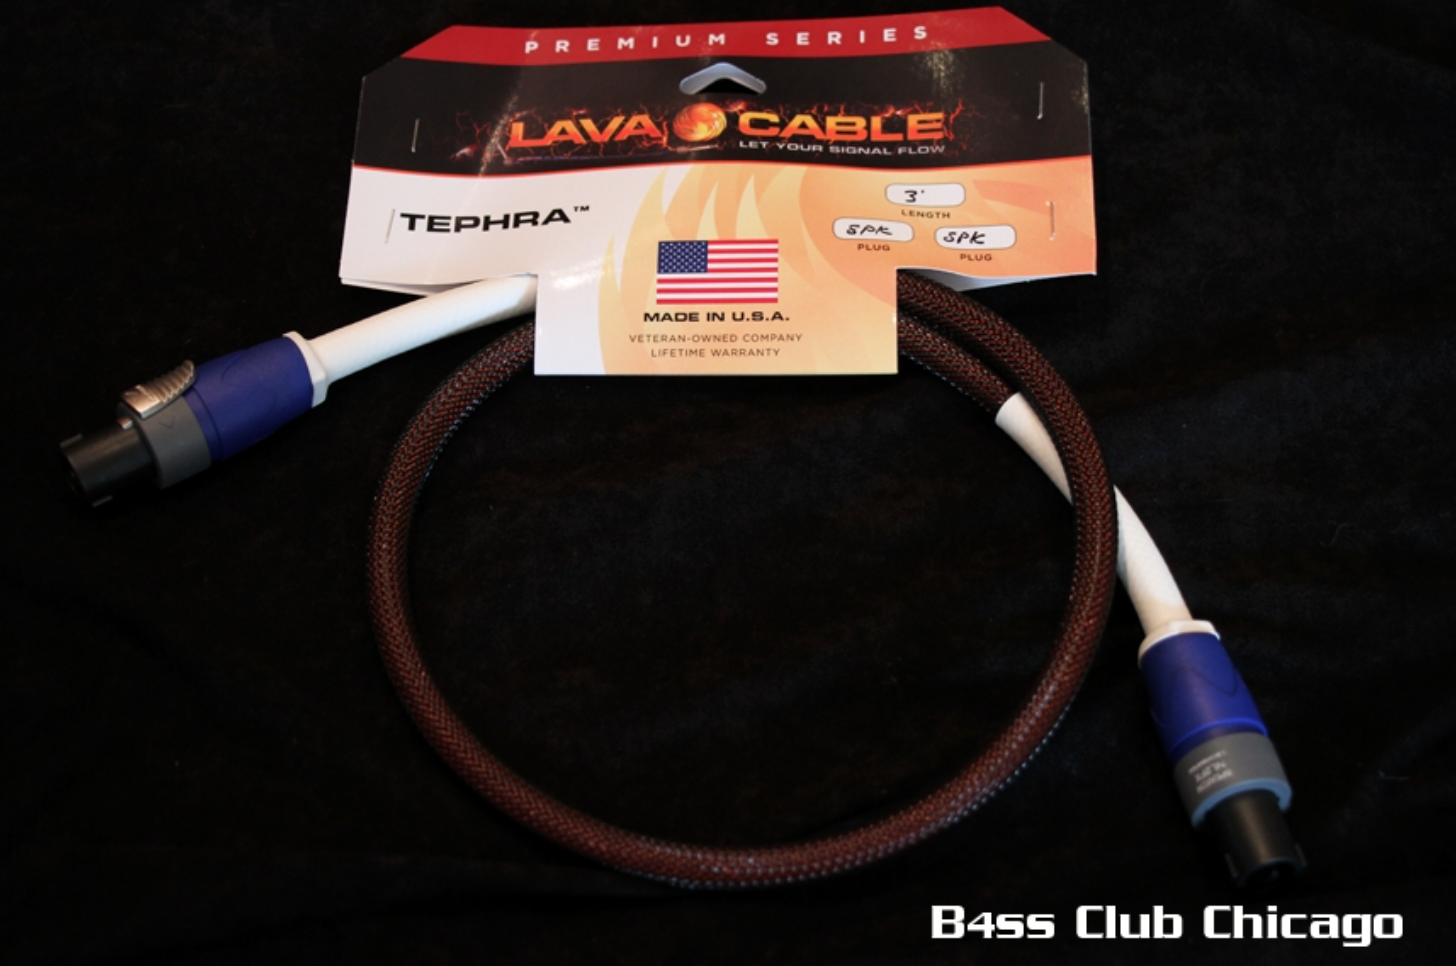 Lava Cable Tephra Speakon Cable 5ft WITH TECHFLEX